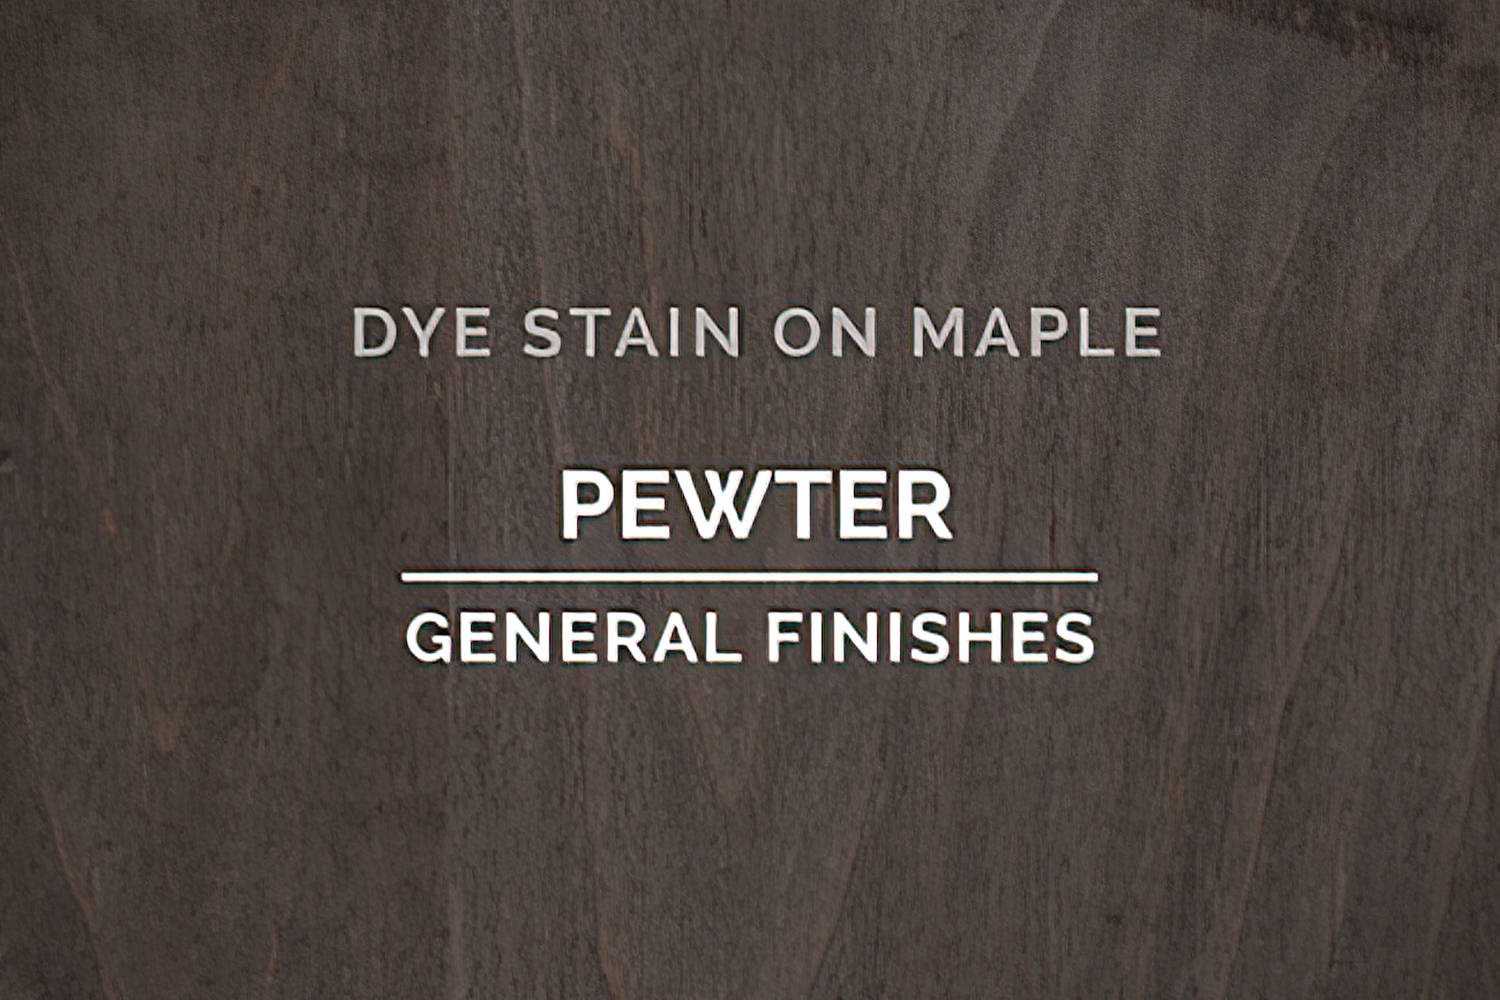 Color Chip Dye Stain Pewter On Maple General Finishes Copy